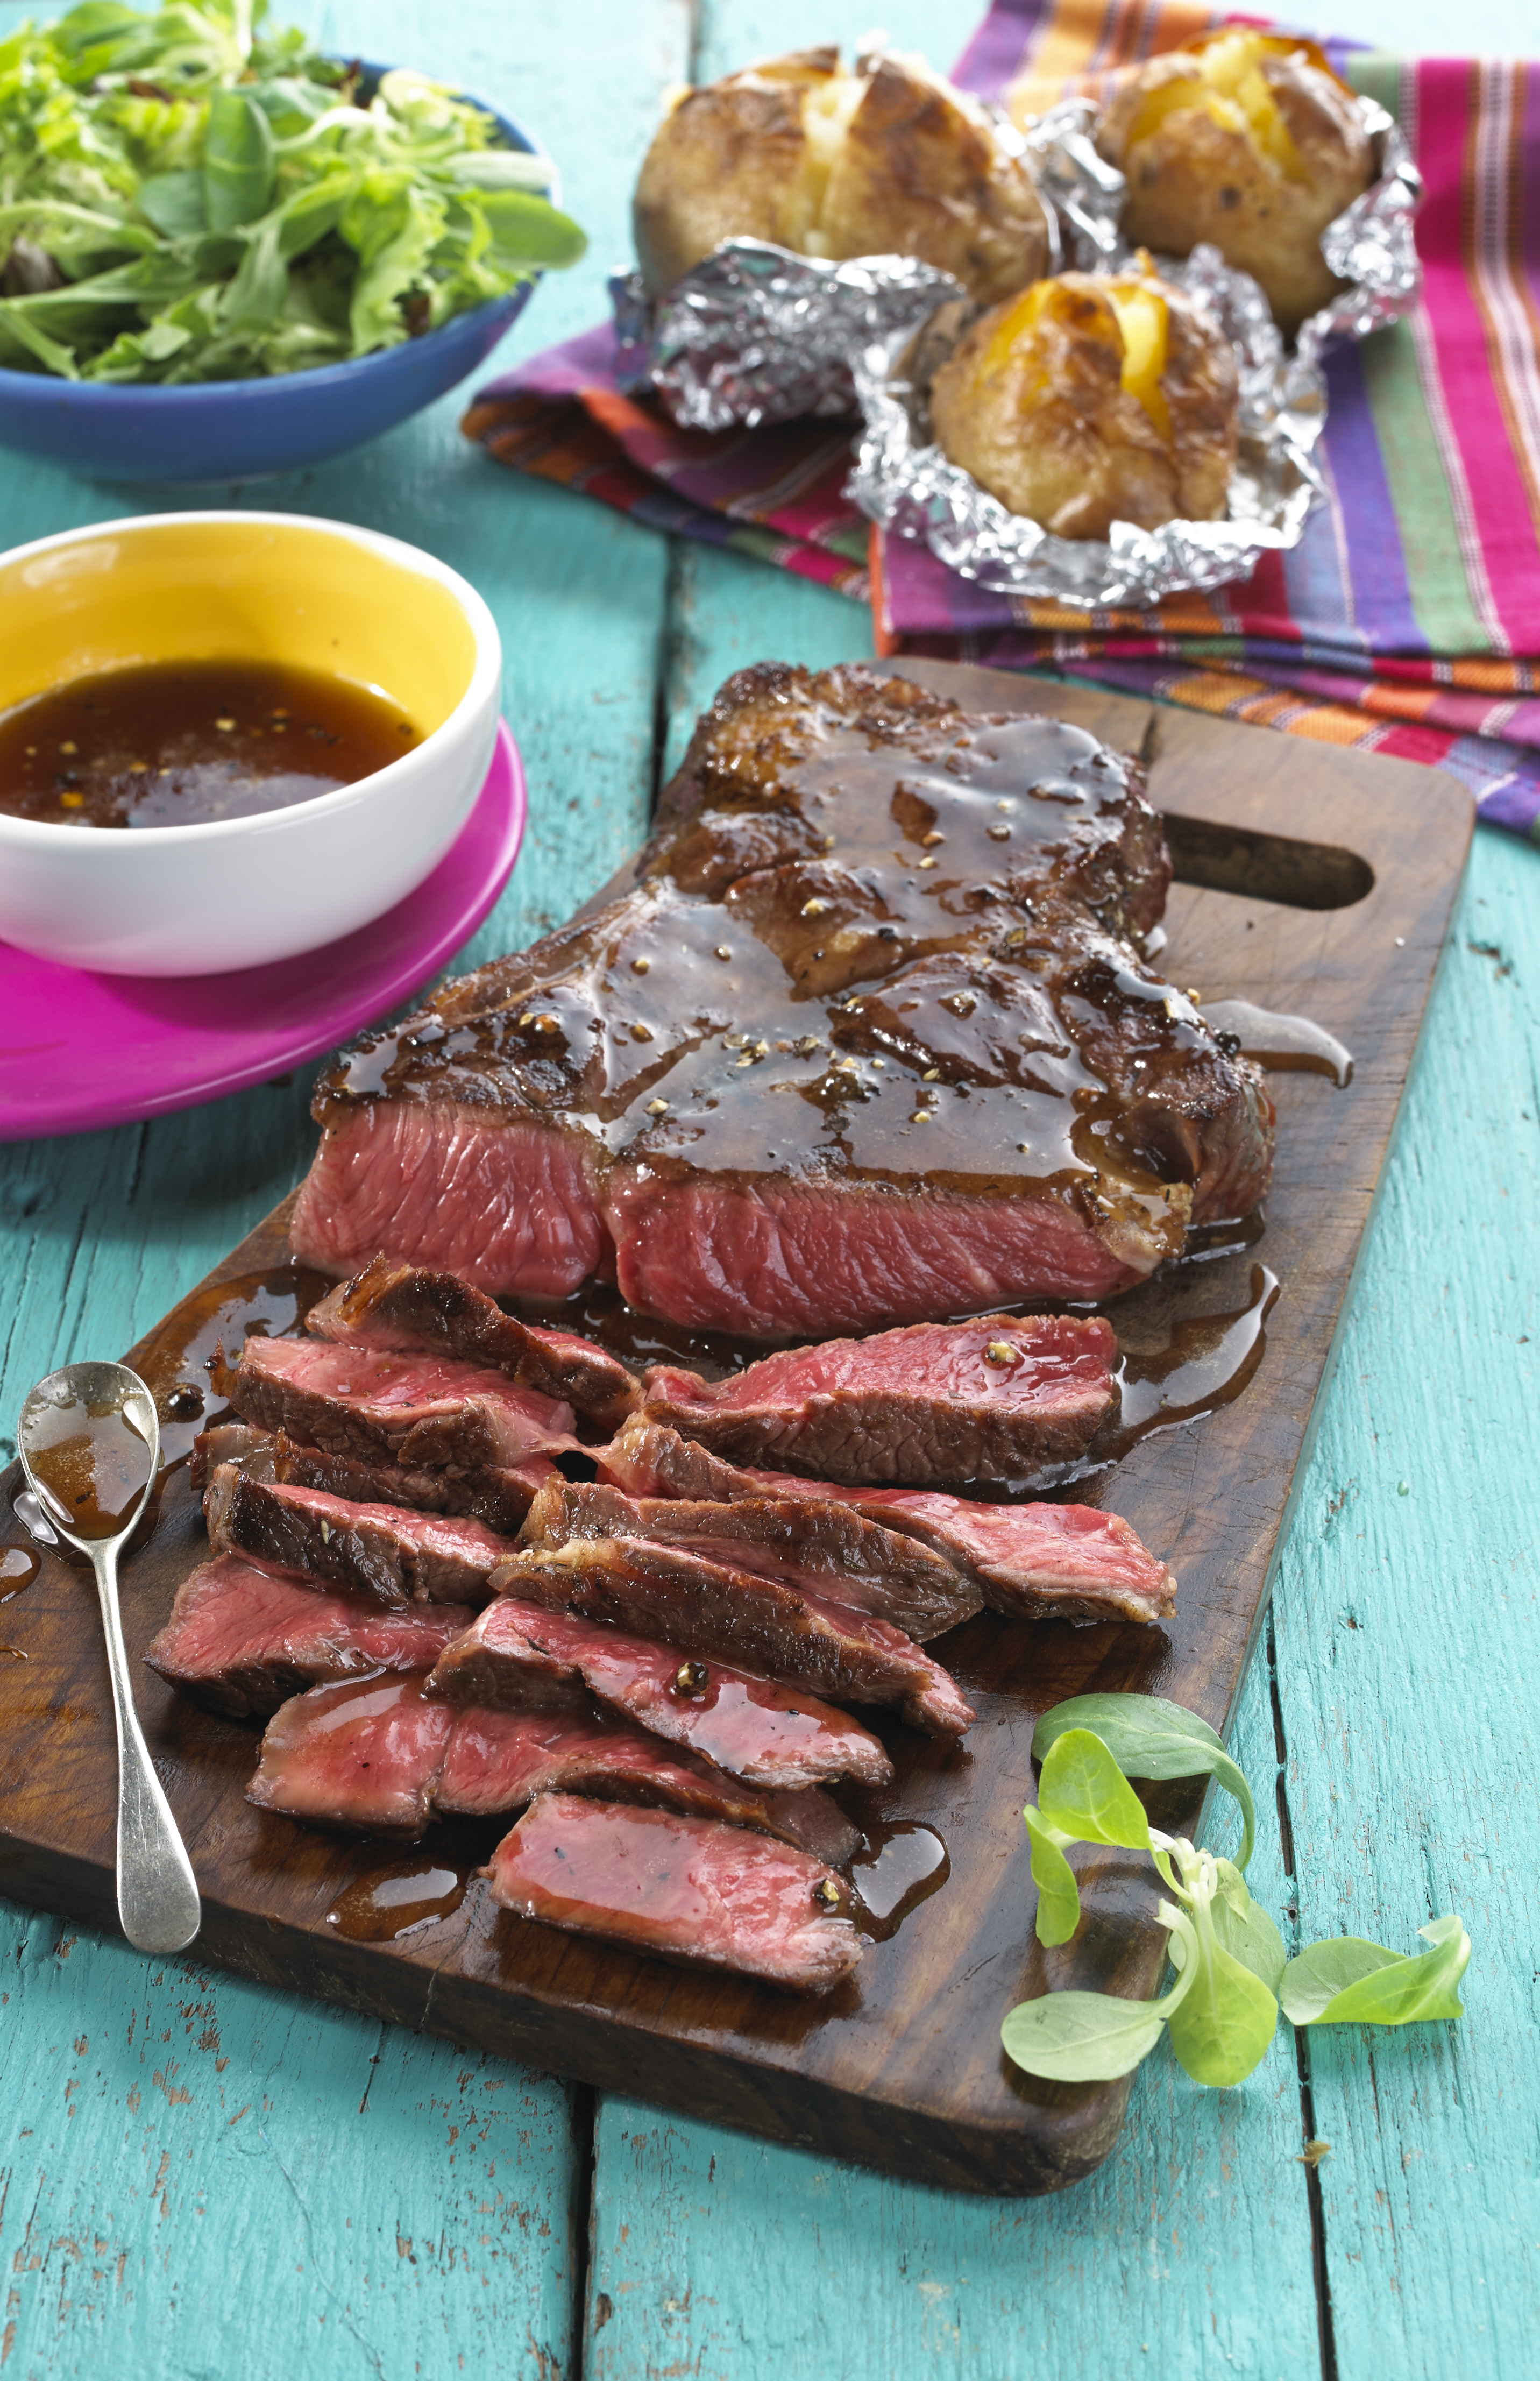 Charred Flank Steak With Peroni Beer Marinade